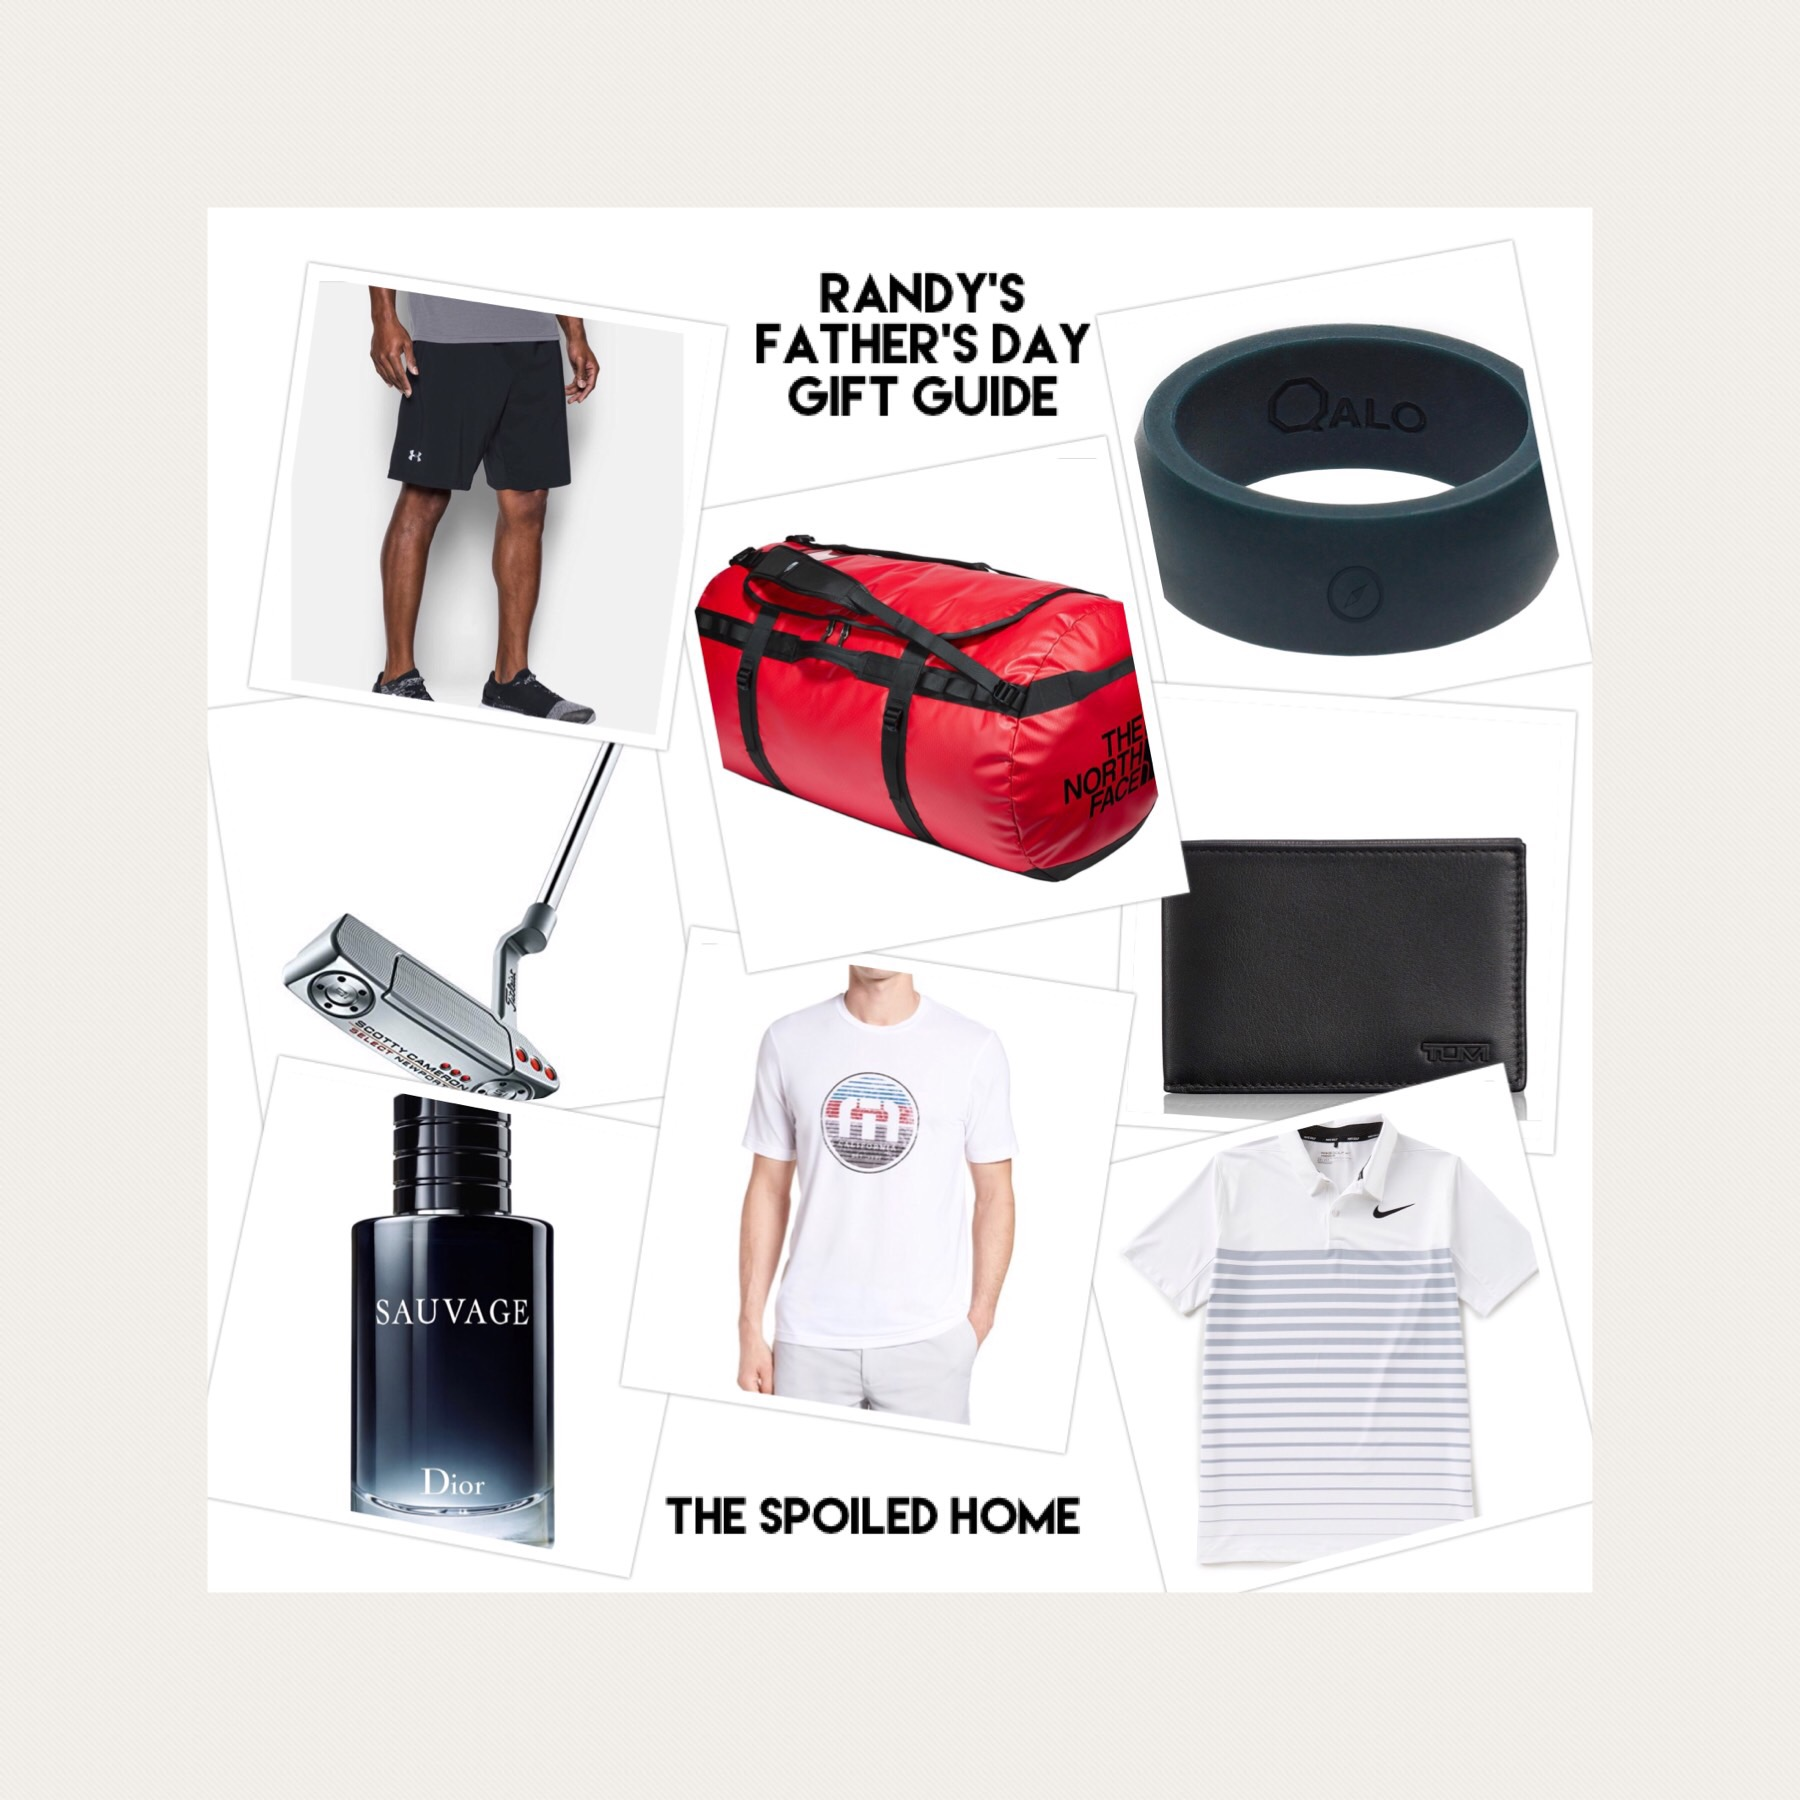 """Randy's Father's Day Gift Guide-He said this is what guys want-meaning """"him"""""""